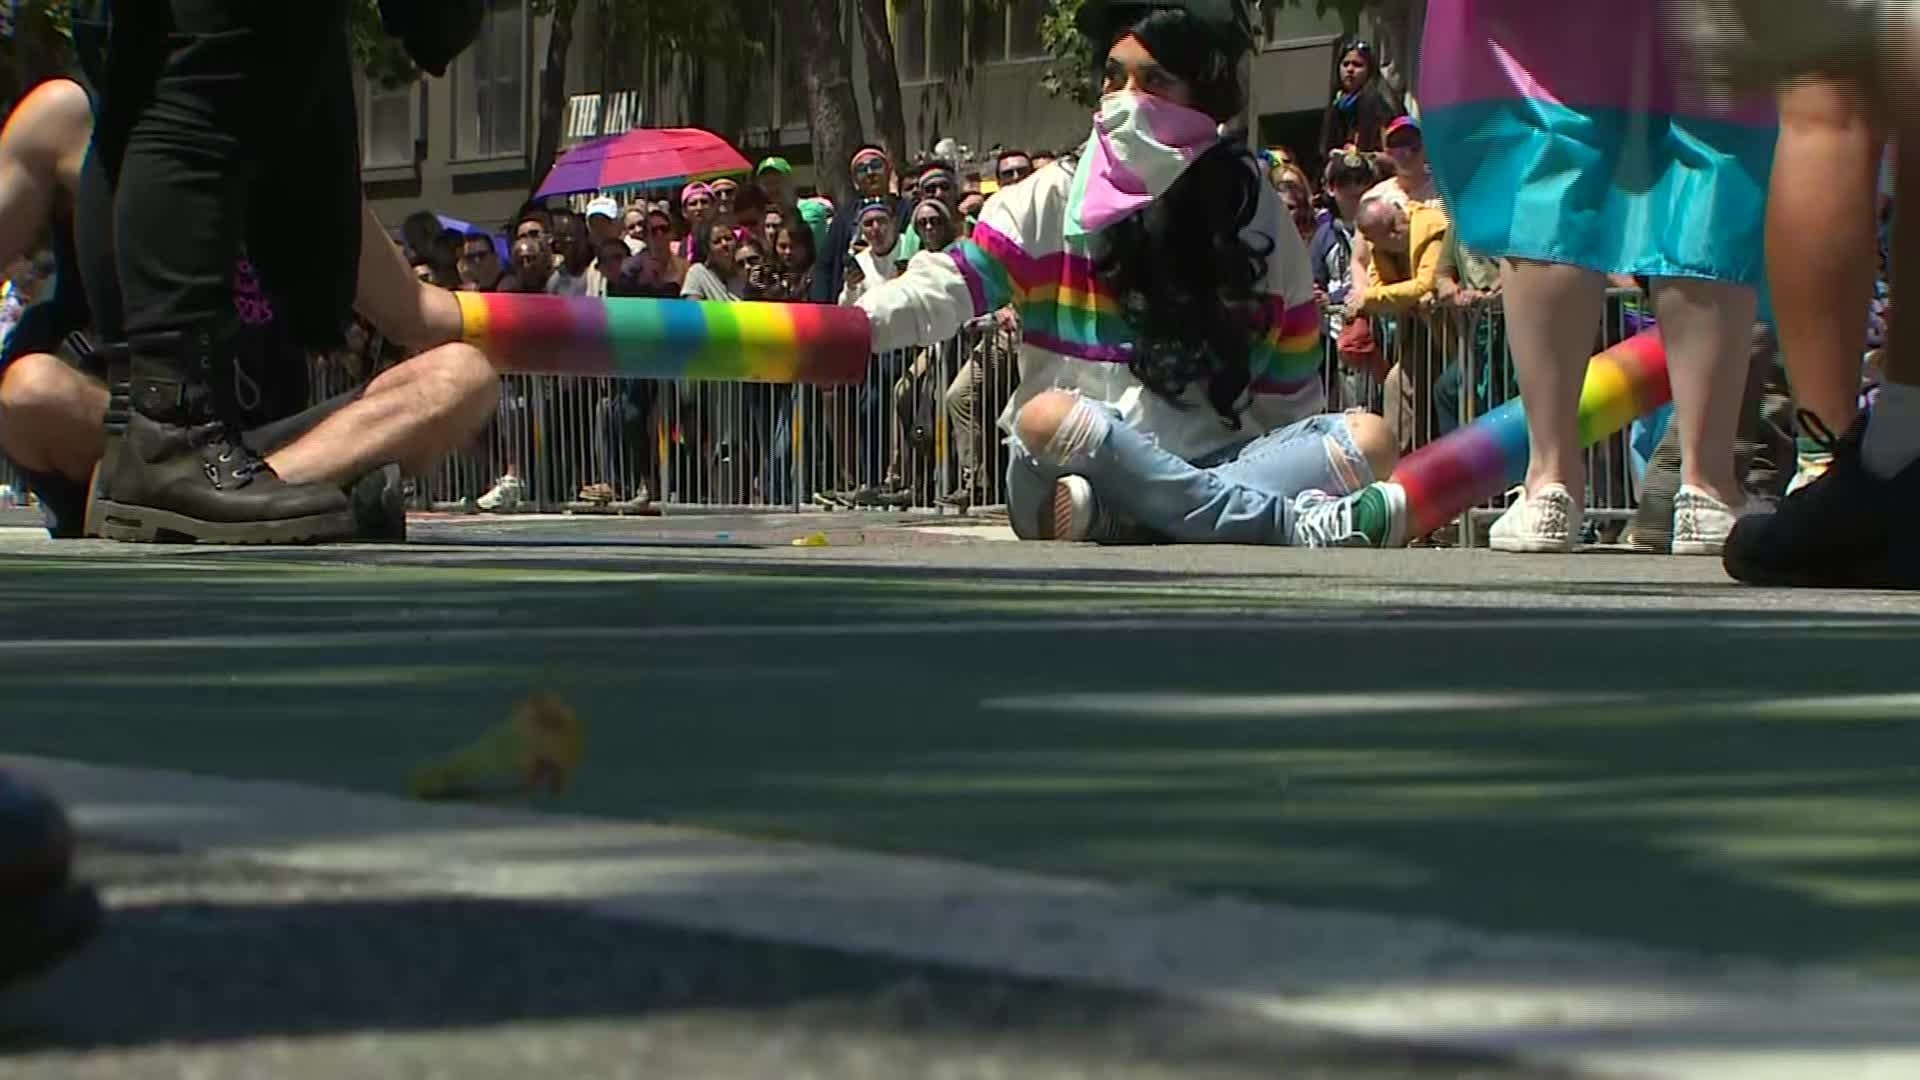 Protesters link arms while dressed in rainbow colors as they block a street during Pride festivities in San Francisco on June 30, 2019. (Credit: CNN)